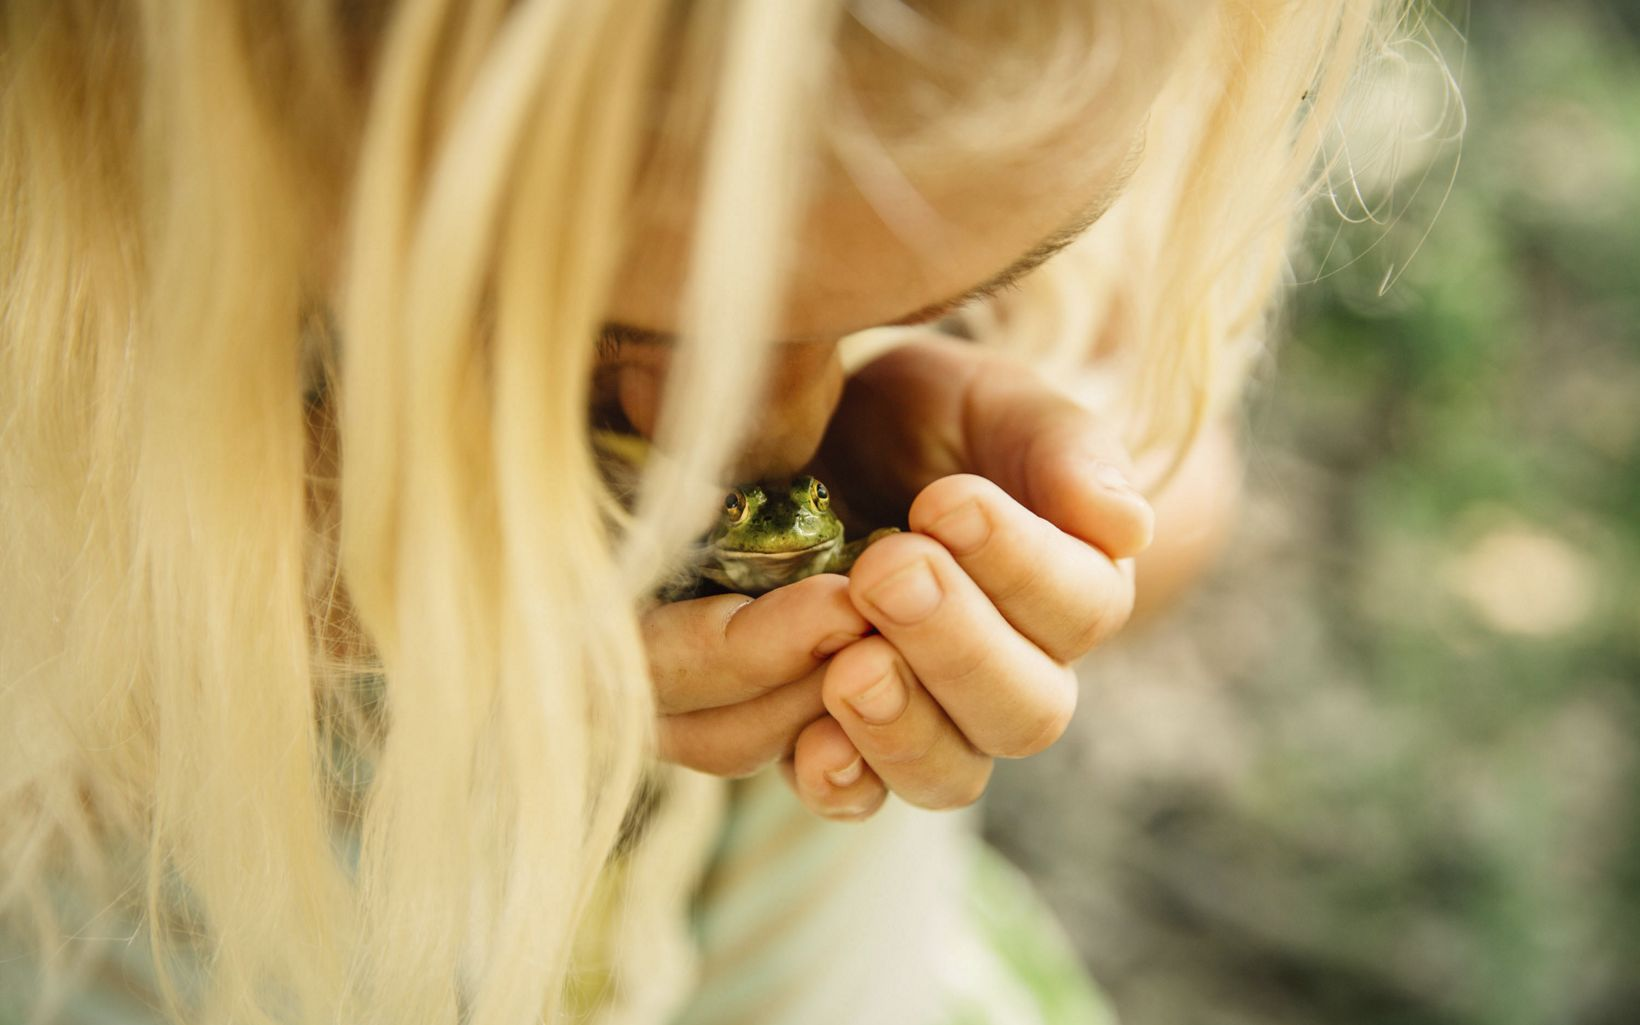 A young girl cradles a bullfrog in the Ozarks of Arkansas.